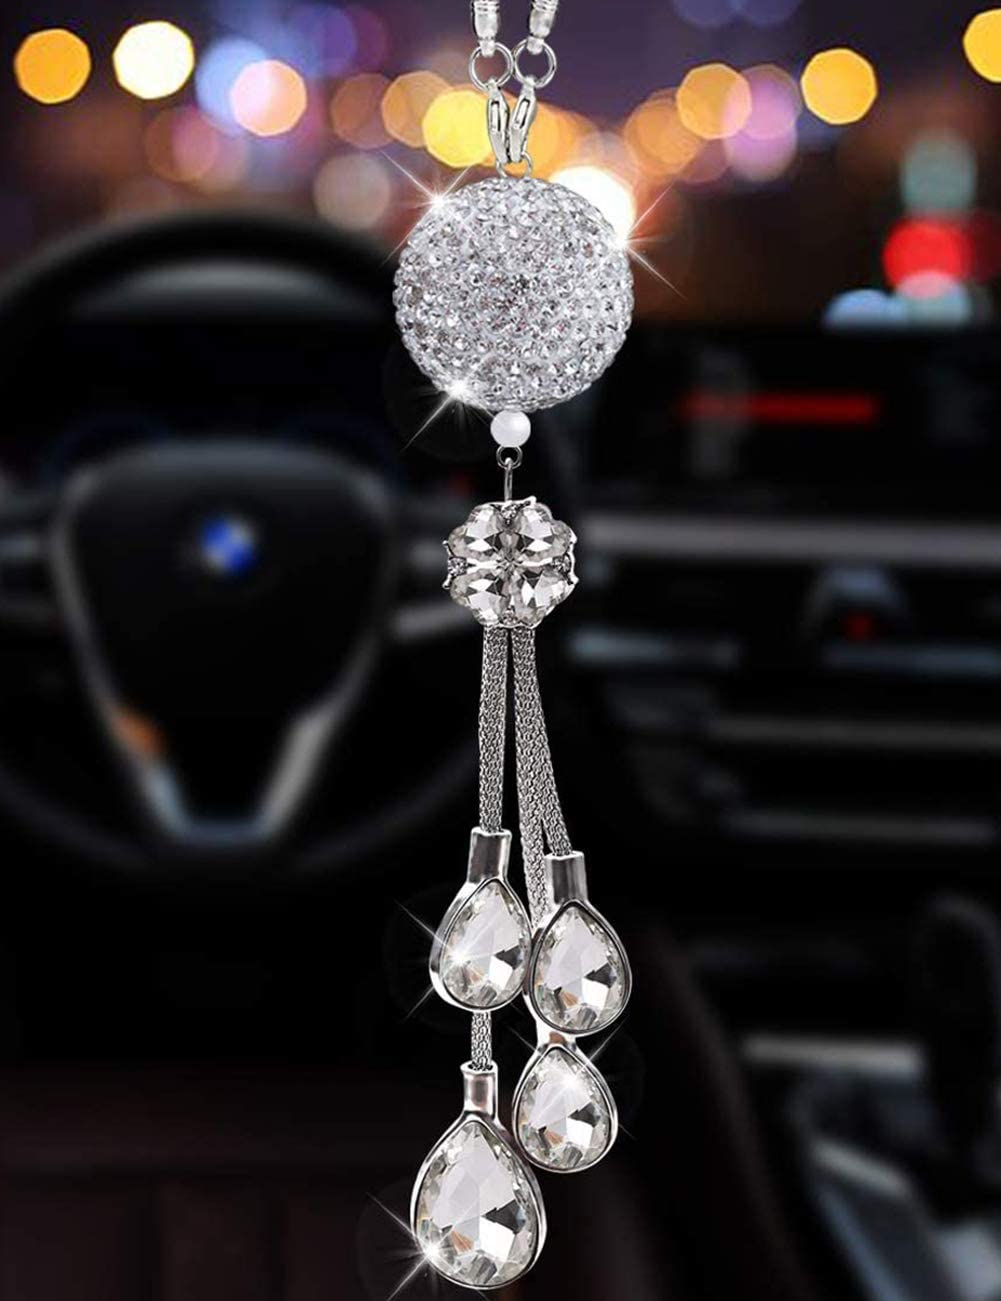 Silver Ball-White Alotex White Bling Car Rearview Mirror Accessories Hanging Car Ornaments Crystal Ball and Clear Drop Lucky Crystal Sun Catcher Ornament Cute Rear View Mirror Charm Decor Pendant